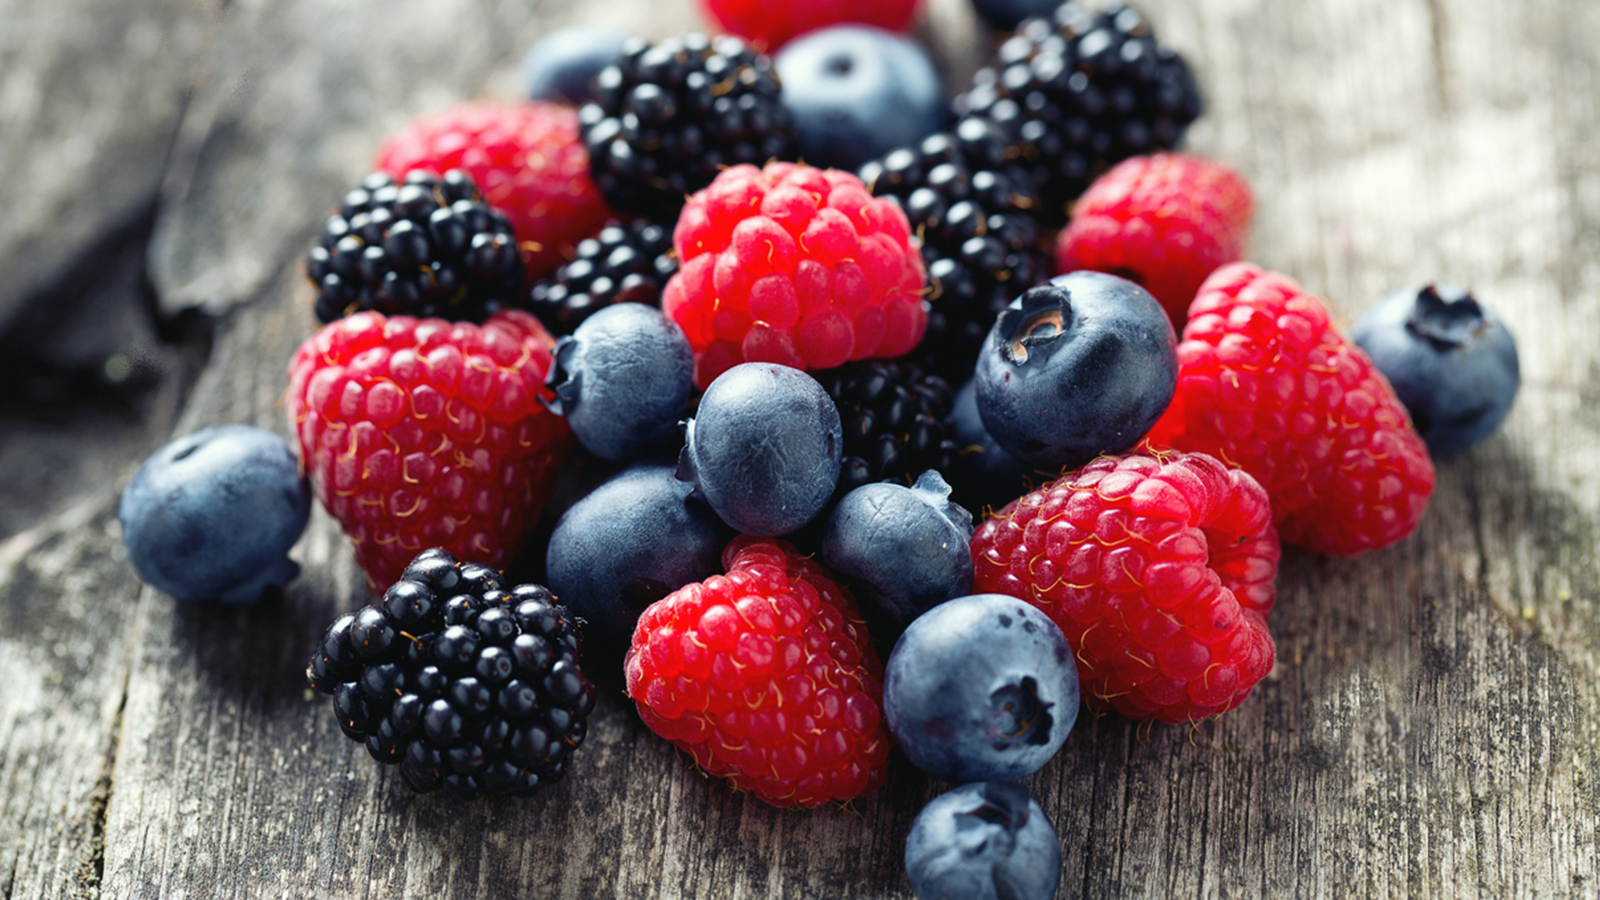 Eat berries to prevent cancer and Provide Many Nutrients